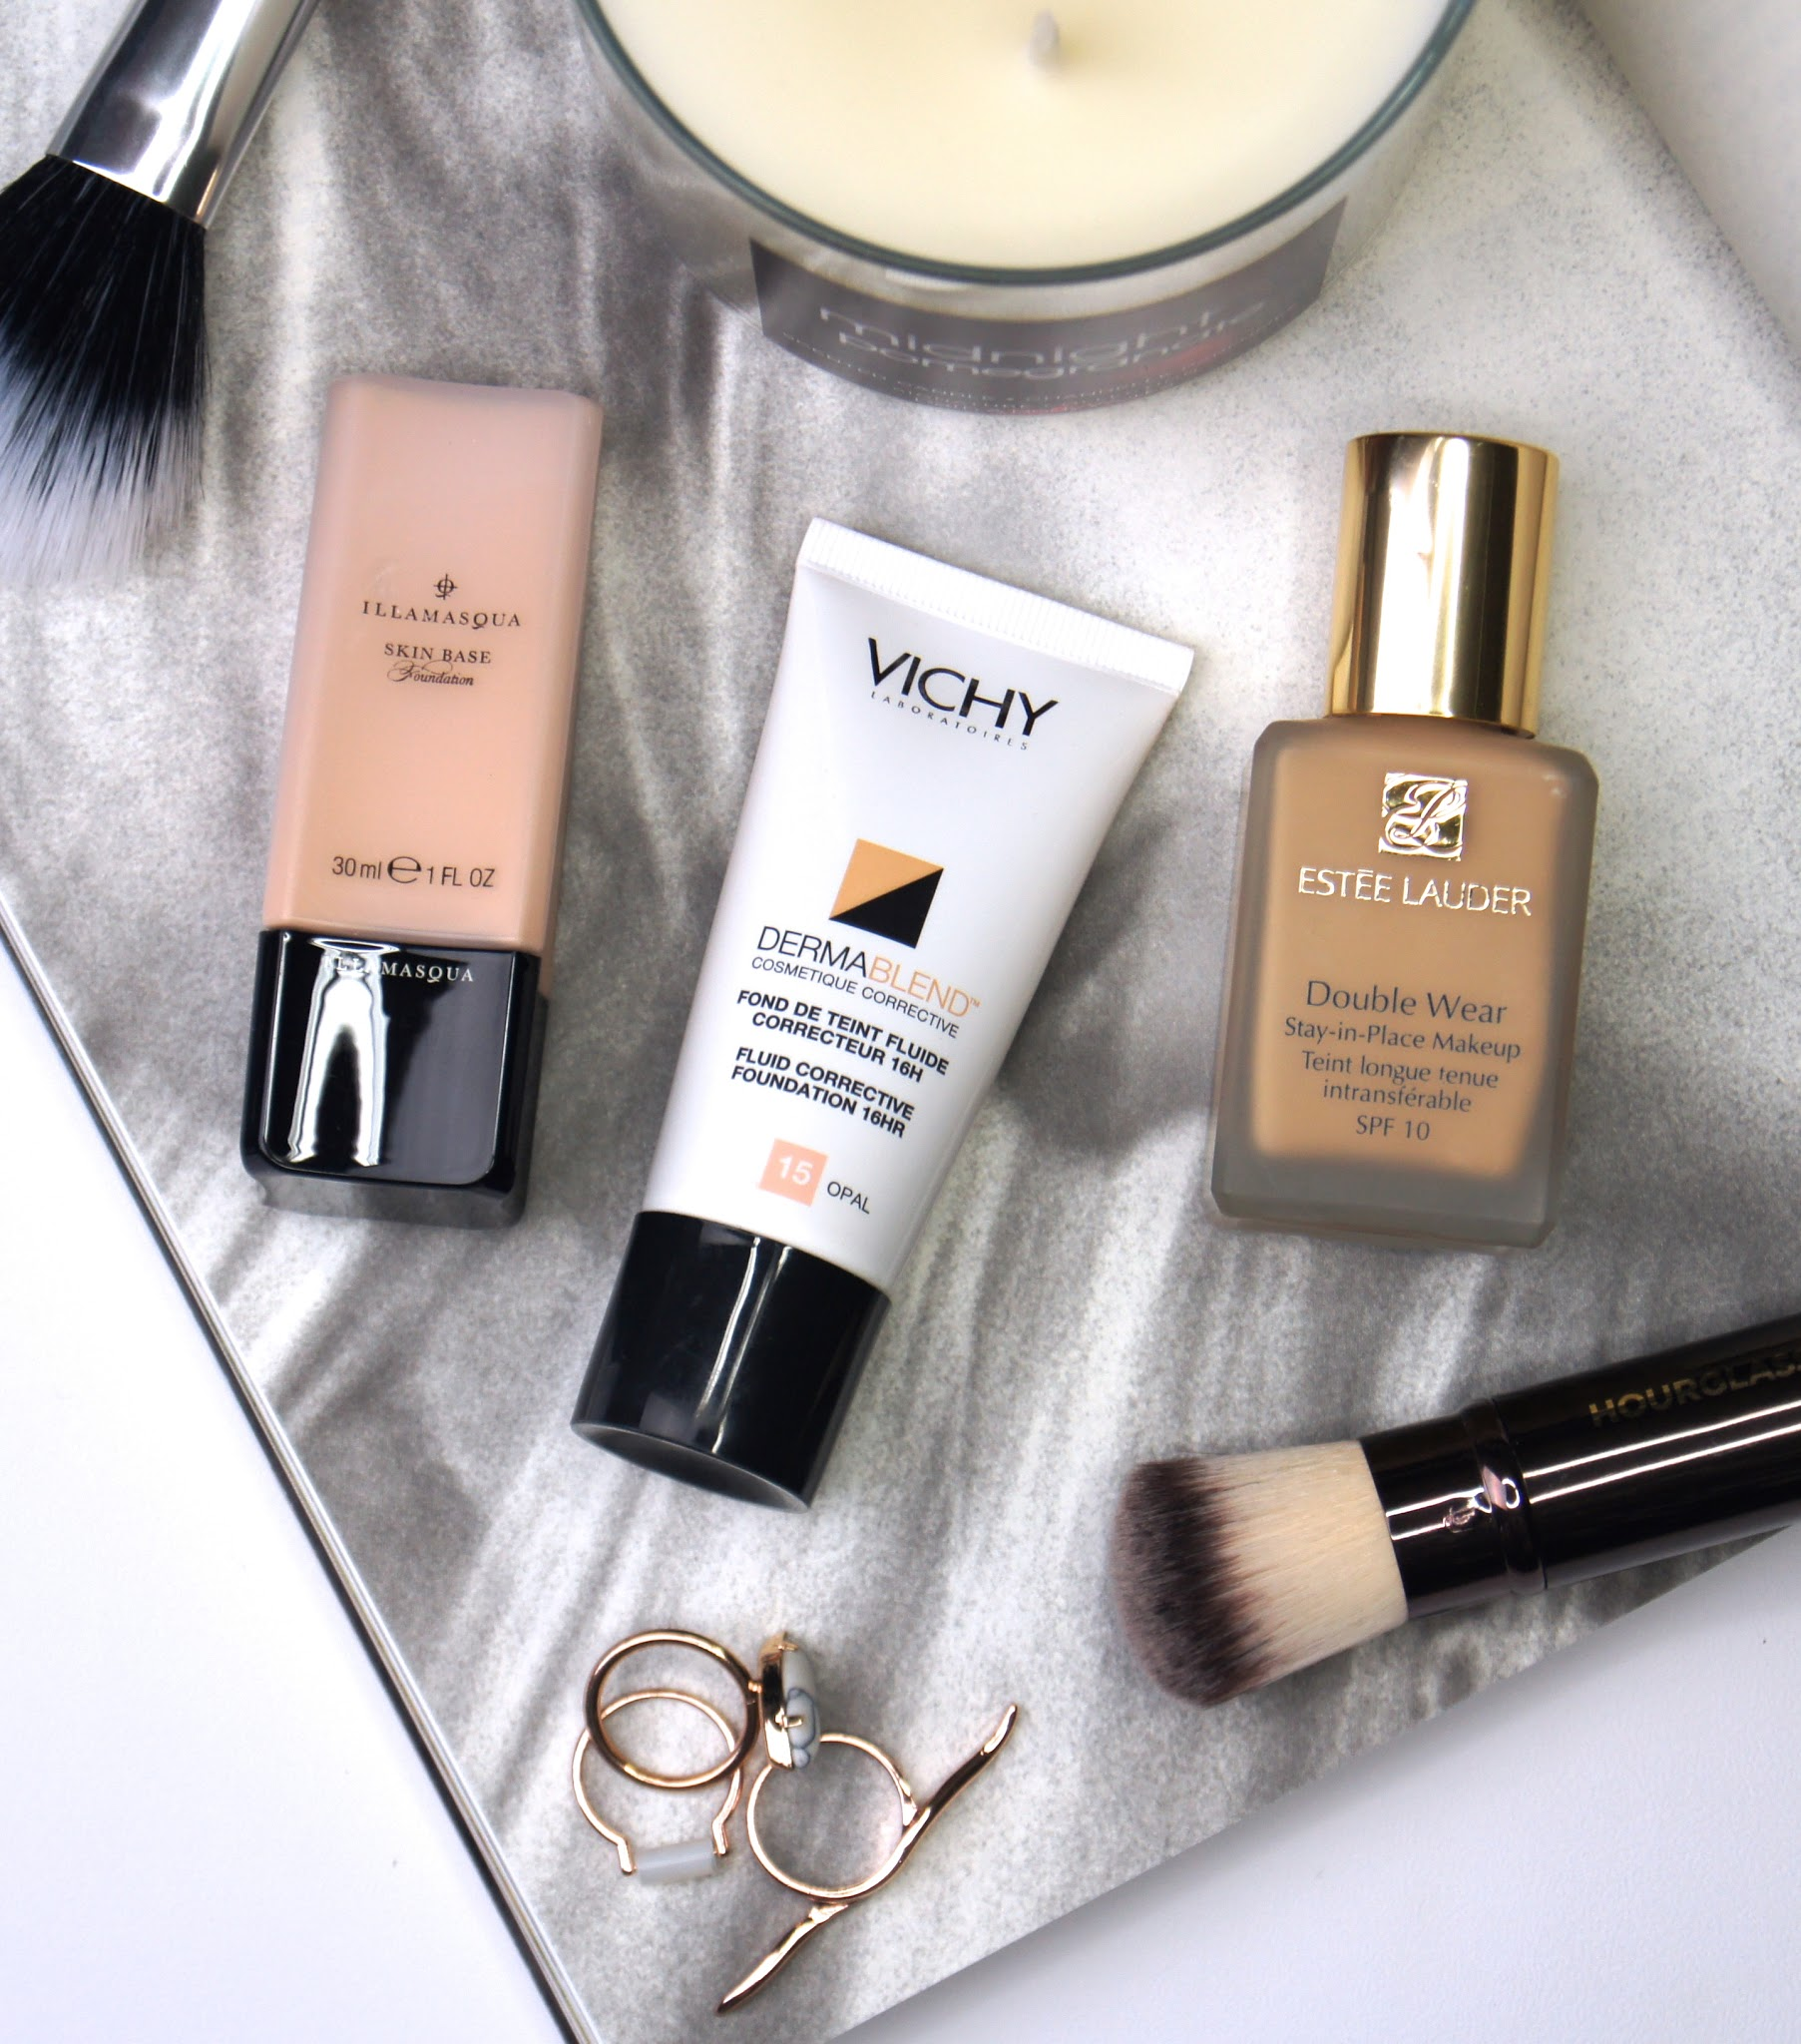 top best 3 full coverage foundations makeup must haves estee lauder illamasqua vichy review